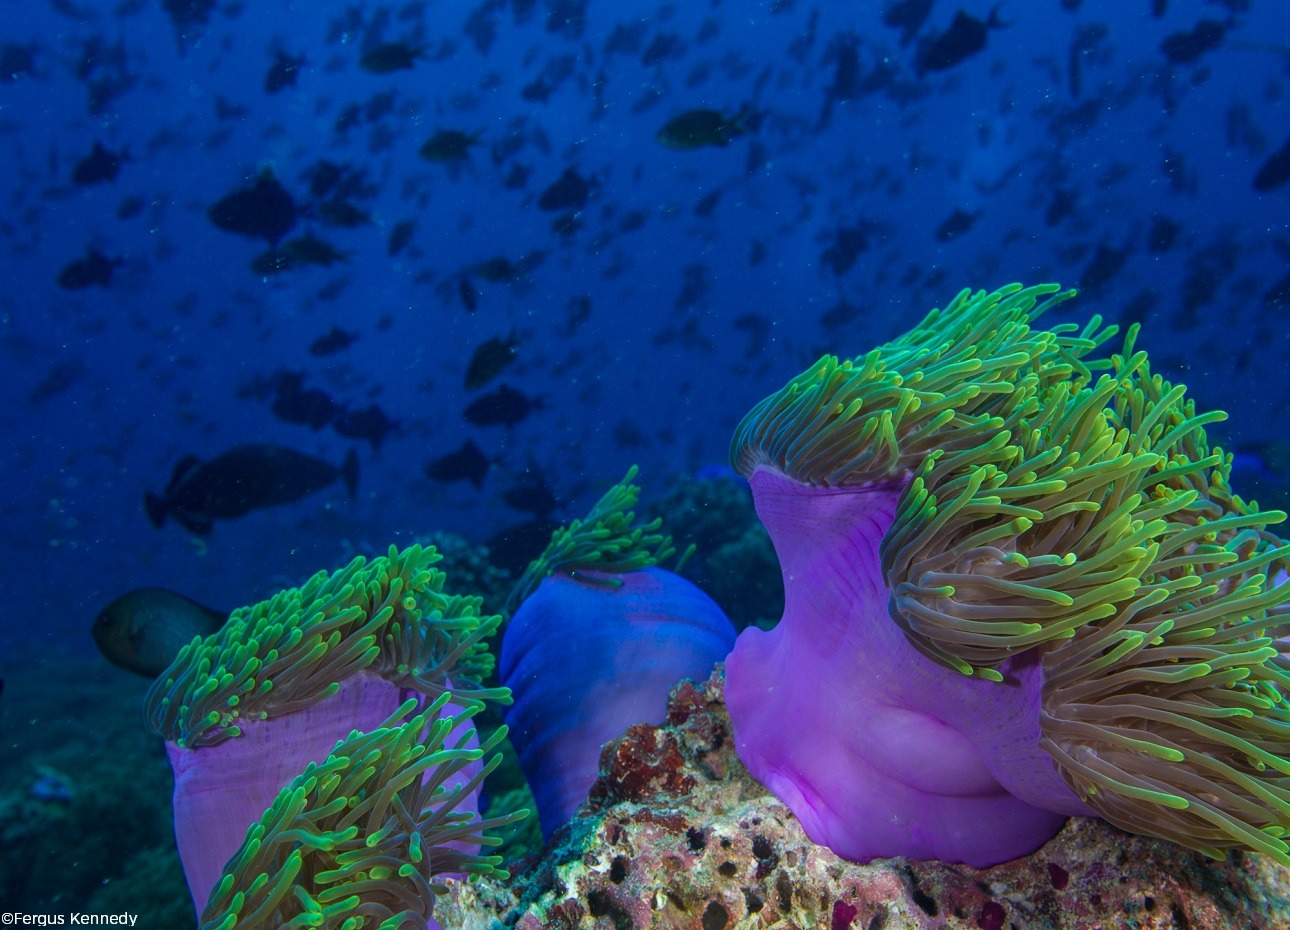 Sea anemone in the Indian Ocean, Maldives, image credited to Fergus Kennedy